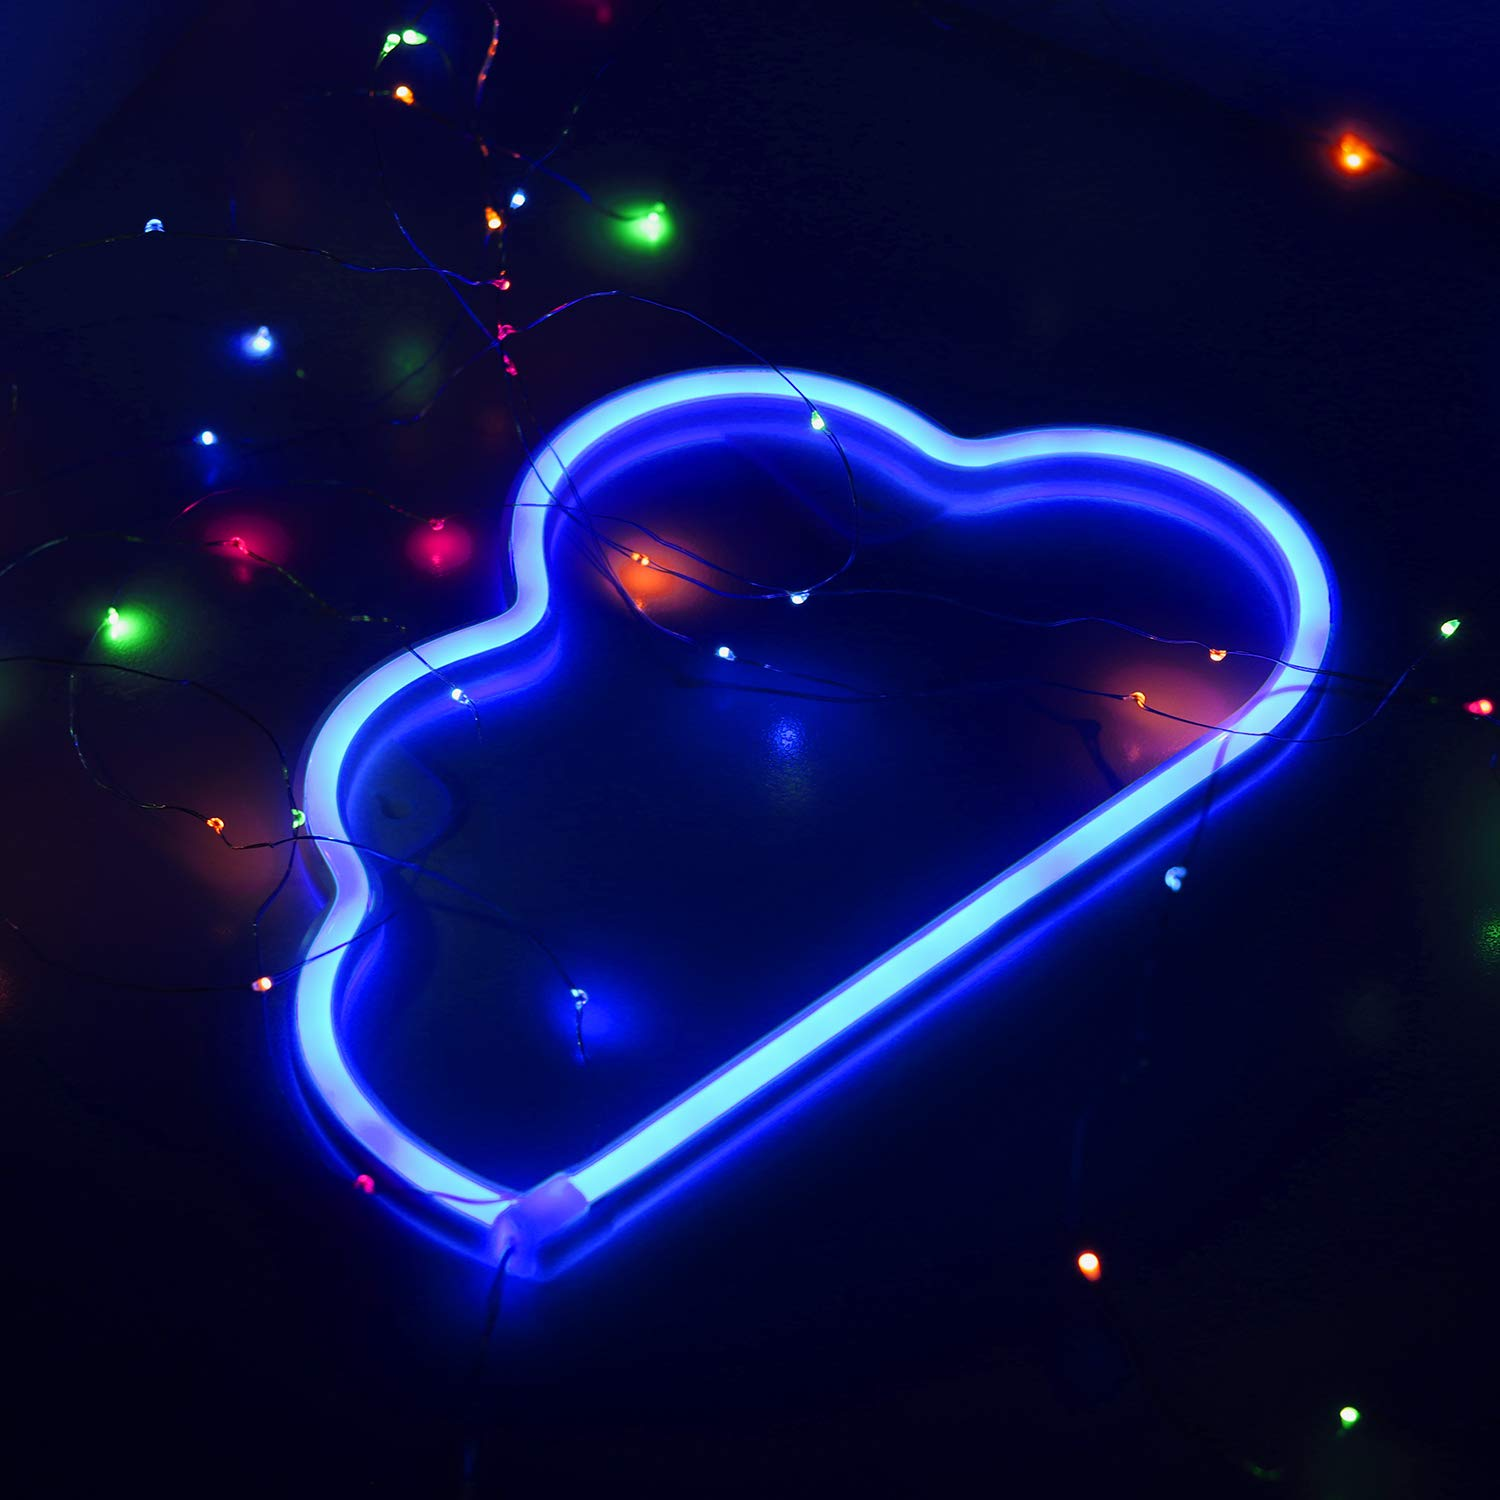 Neon Night Light Blue Lightning Bolt Battery and USB Powered Wall Art LED Decorative Lights for Living Room Man Cave Games Room Party Decoration NELNBB